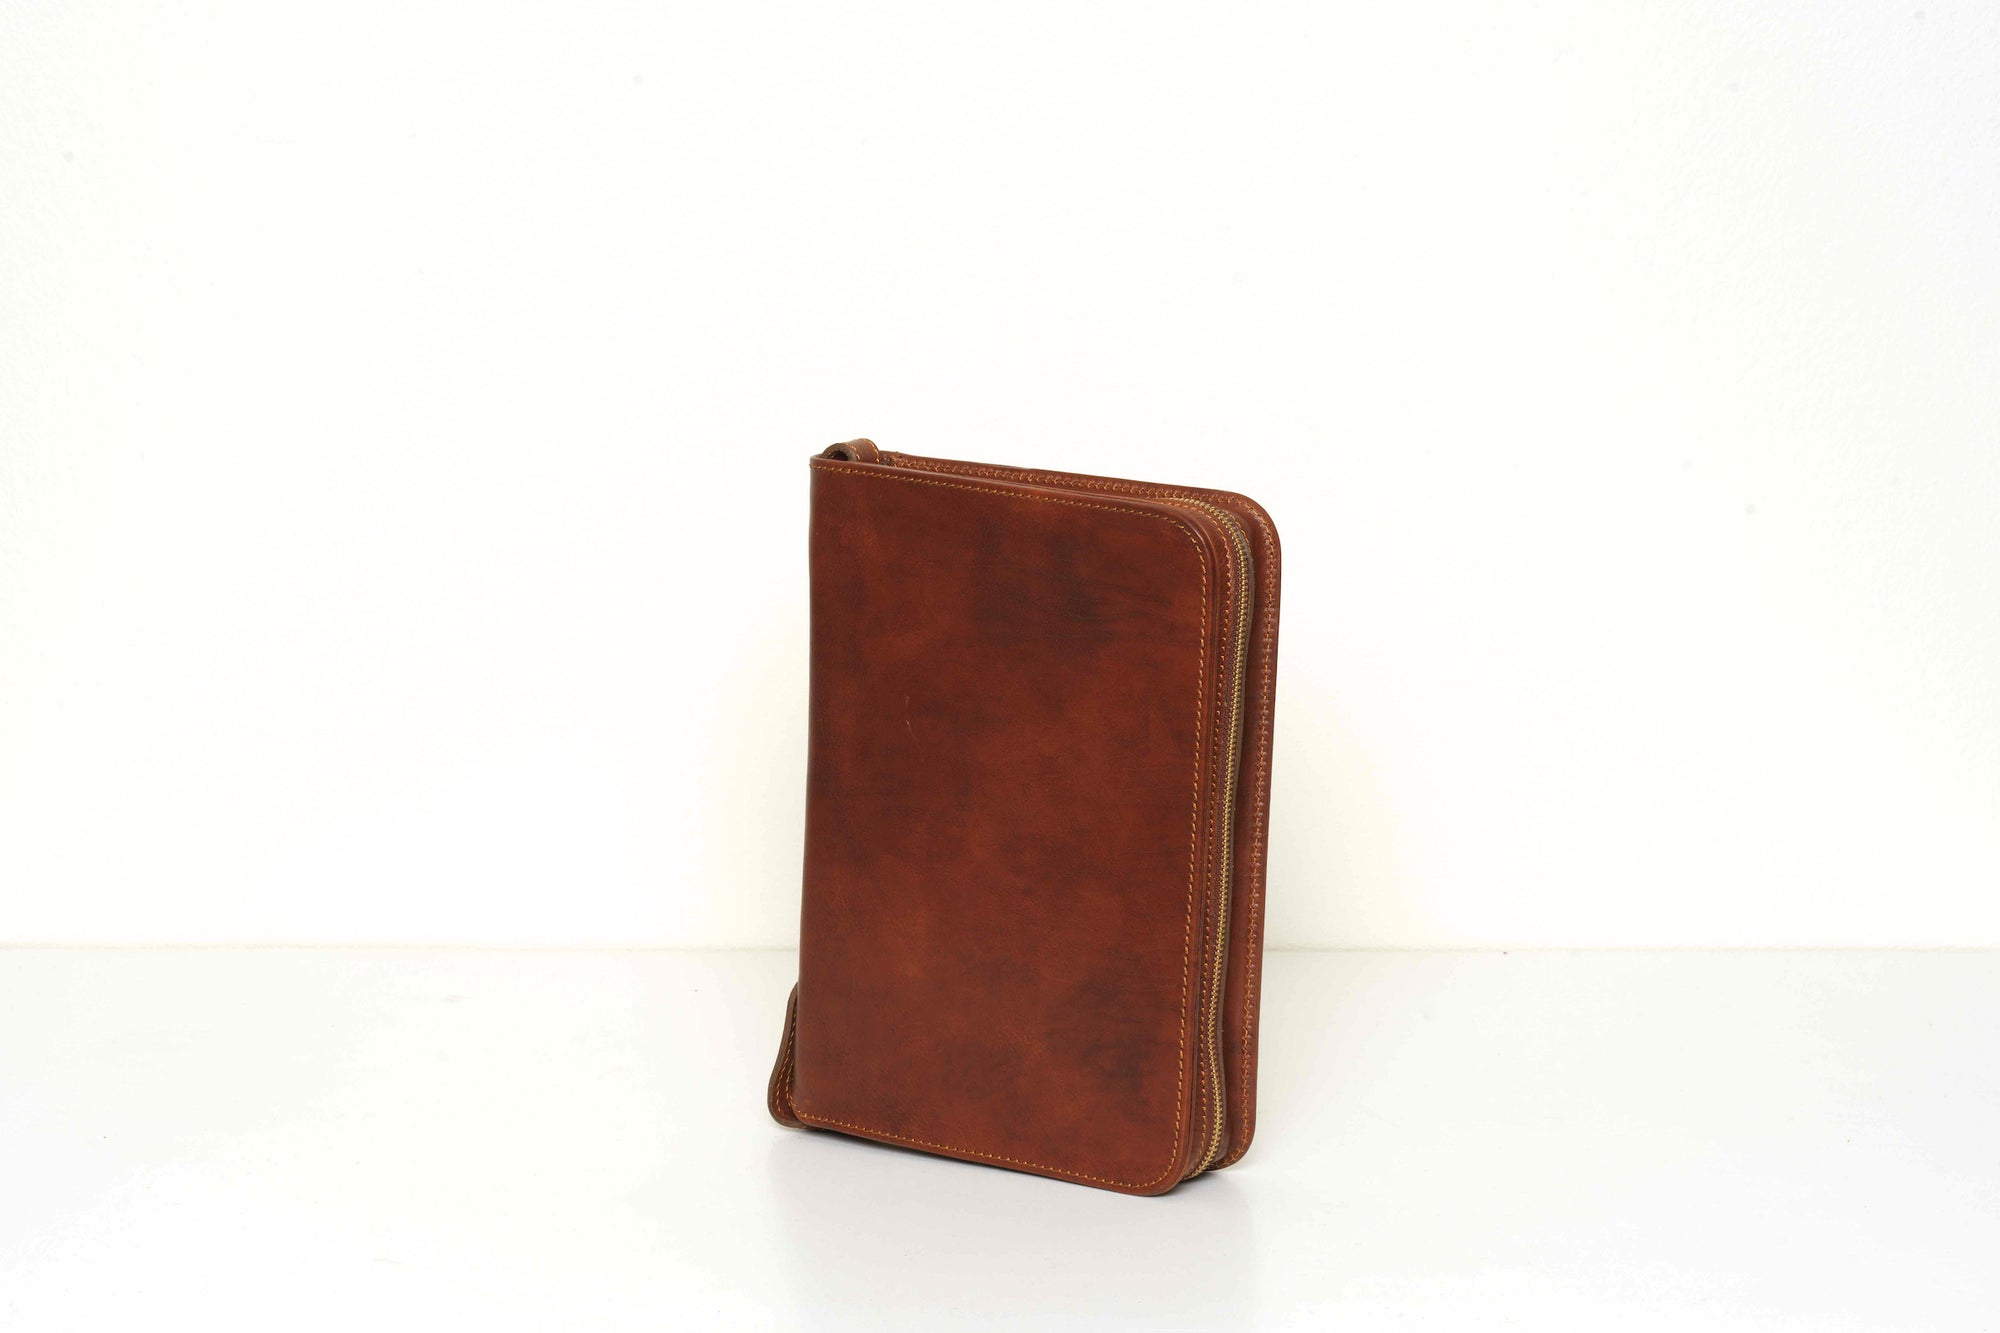 Octavo A5 Brown Leather Compendium